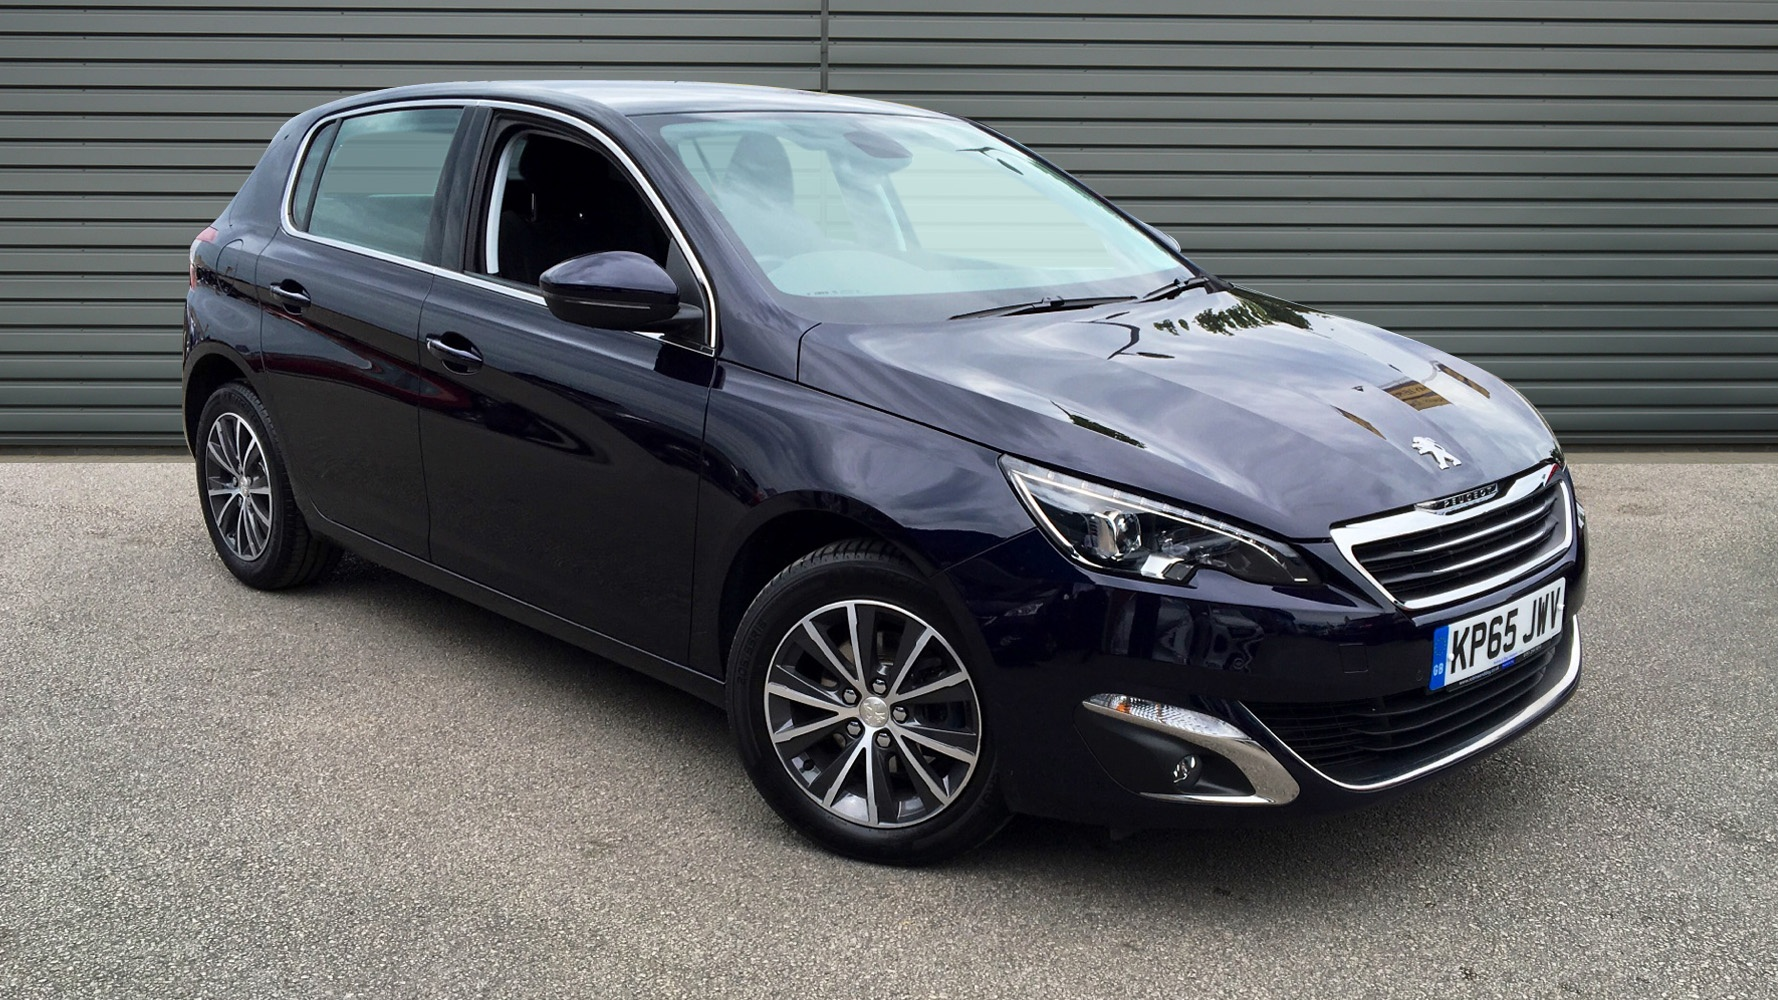 used peugeot 308 hatchback 1 6 bluehdi allure 5dr start stop 2015 kp65jwv. Black Bedroom Furniture Sets. Home Design Ideas